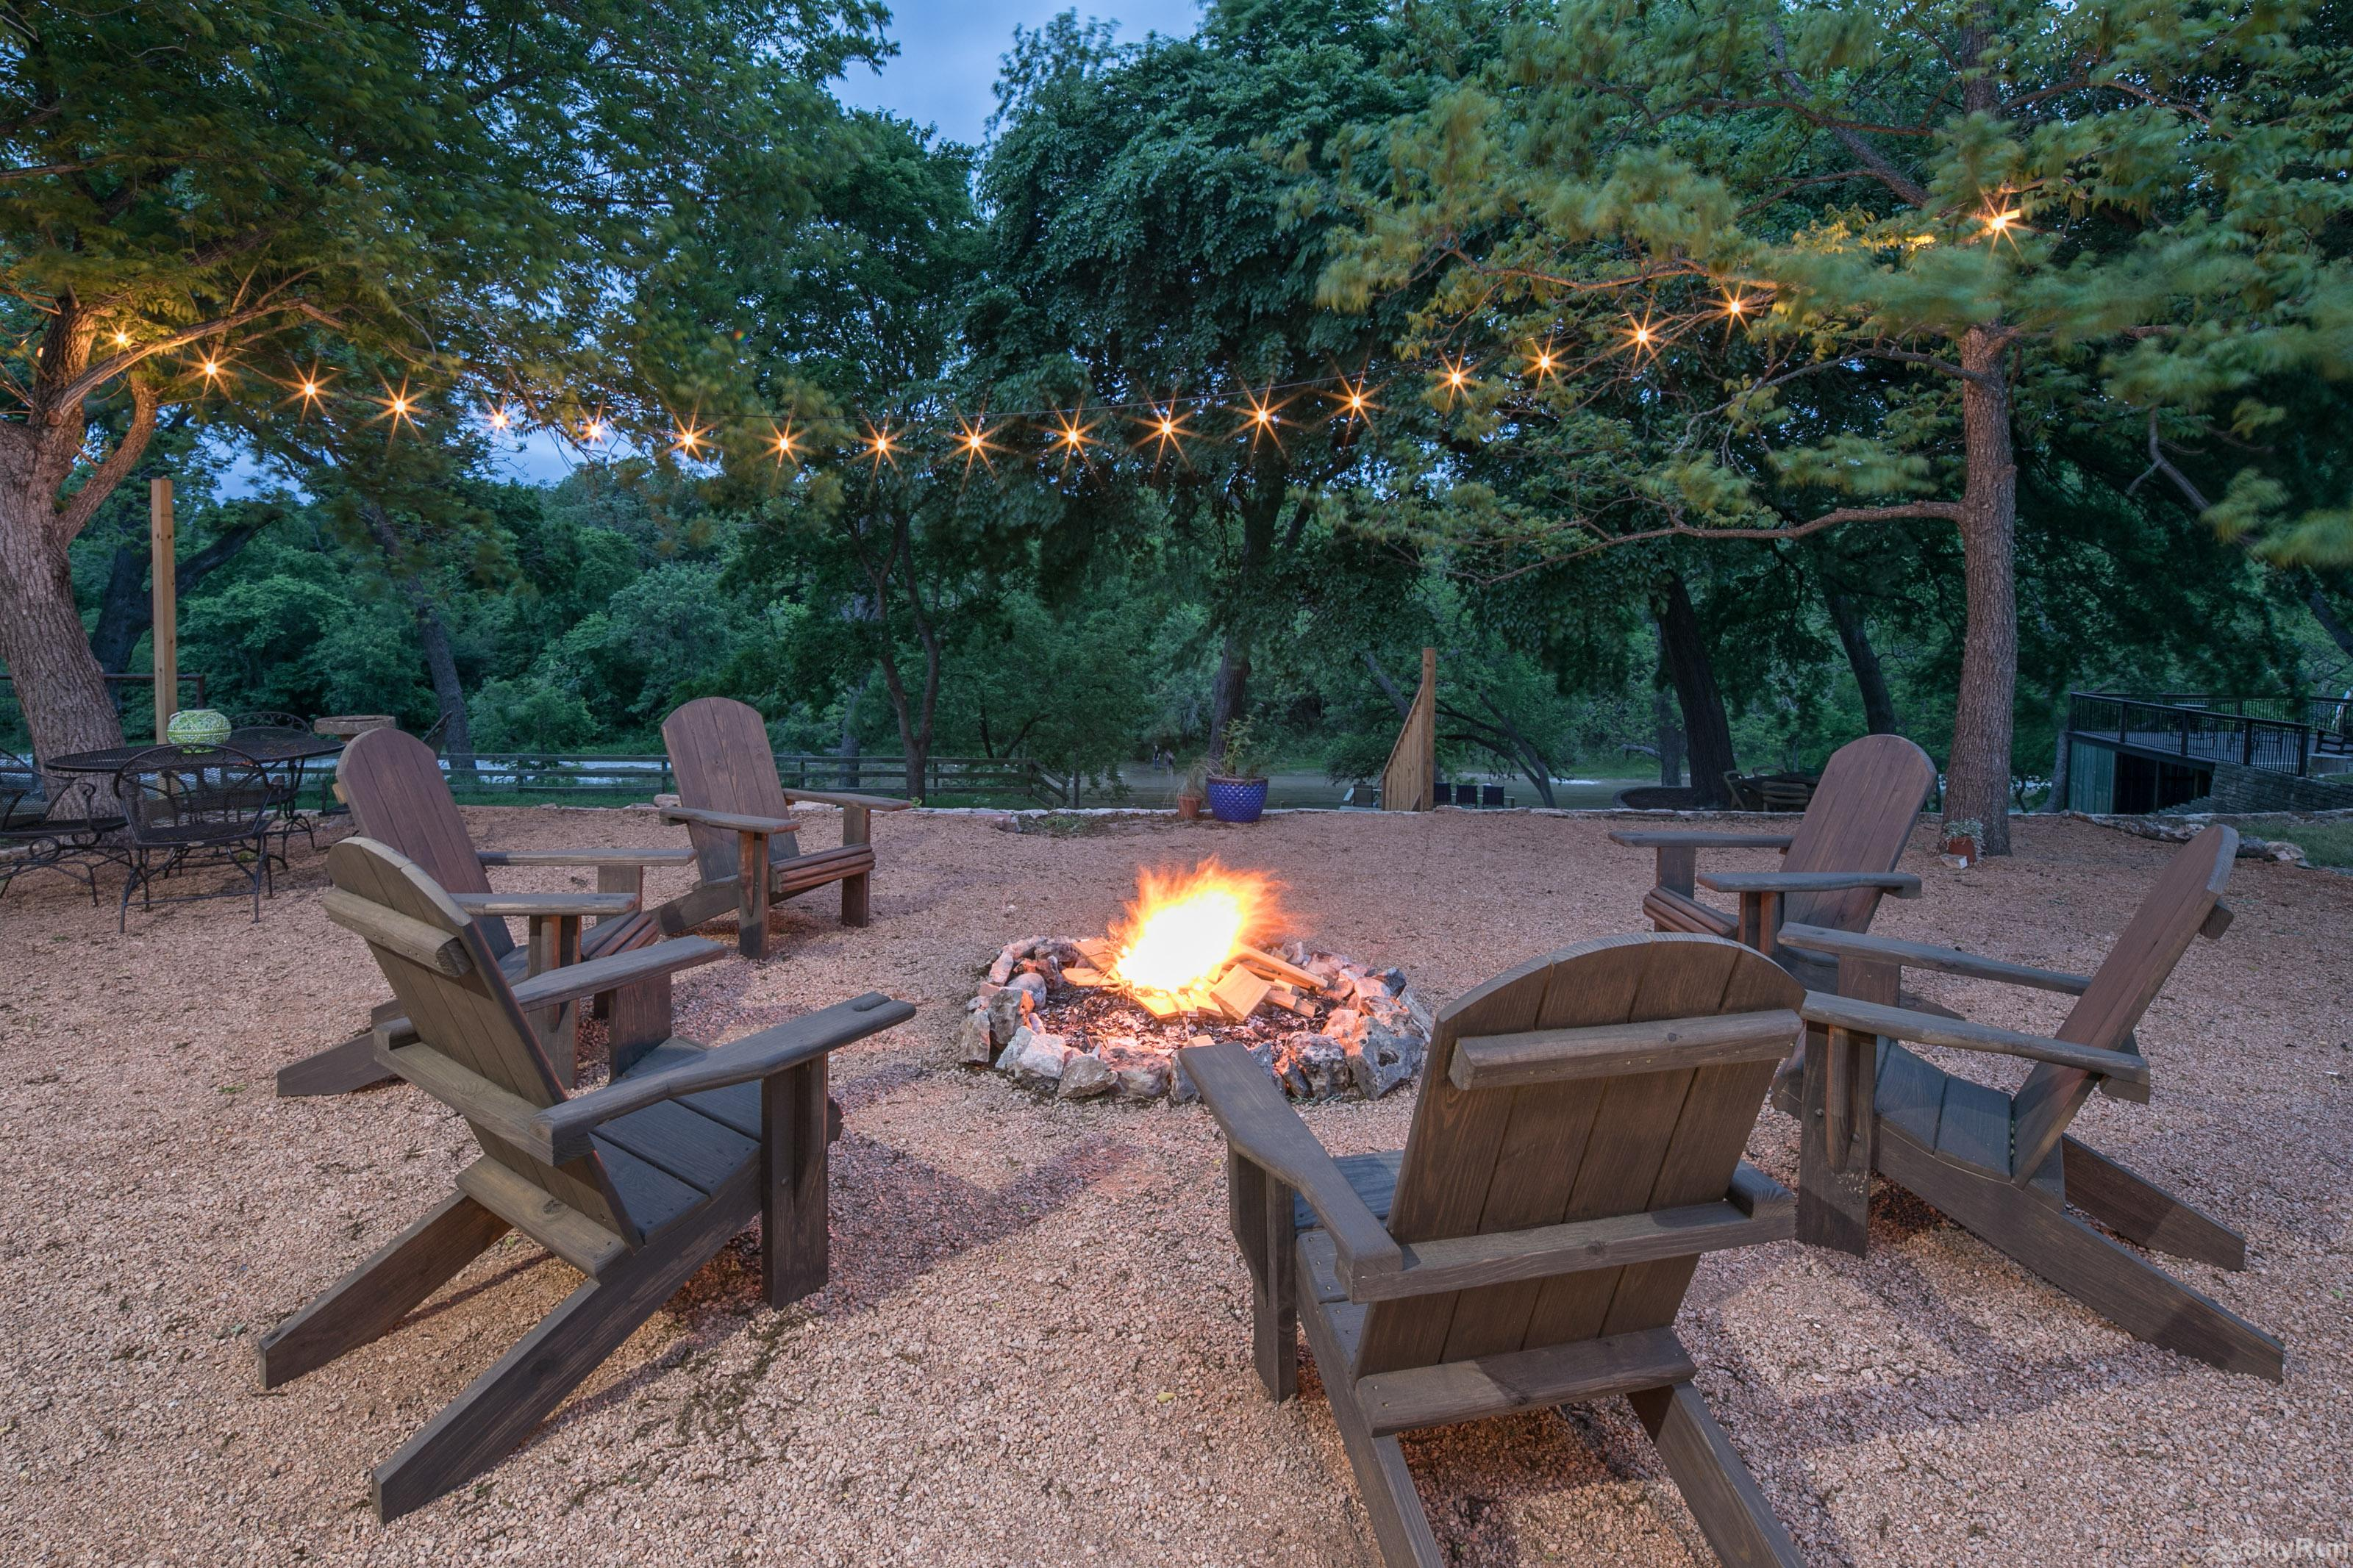 RIVER ROSE Riverfront campfire area in the backyard